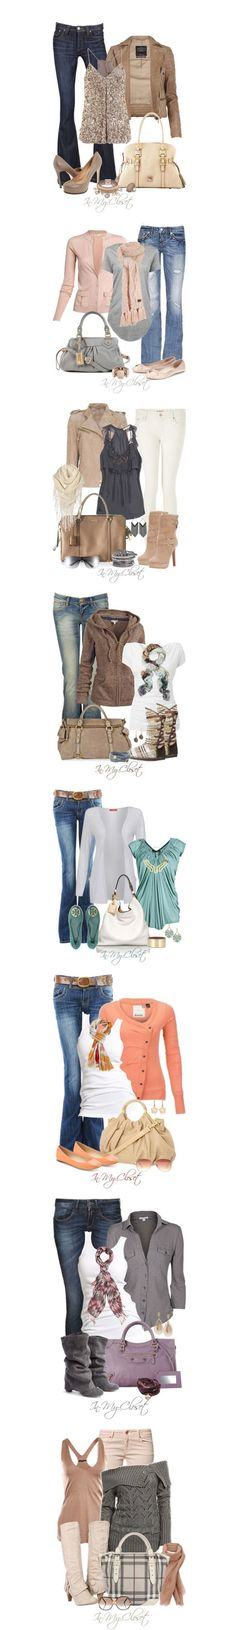 20-Unique-Spring-Fashion-Trends-Ideas-For-Girls-Women-2013-20.jpg 550×3,800 pixels